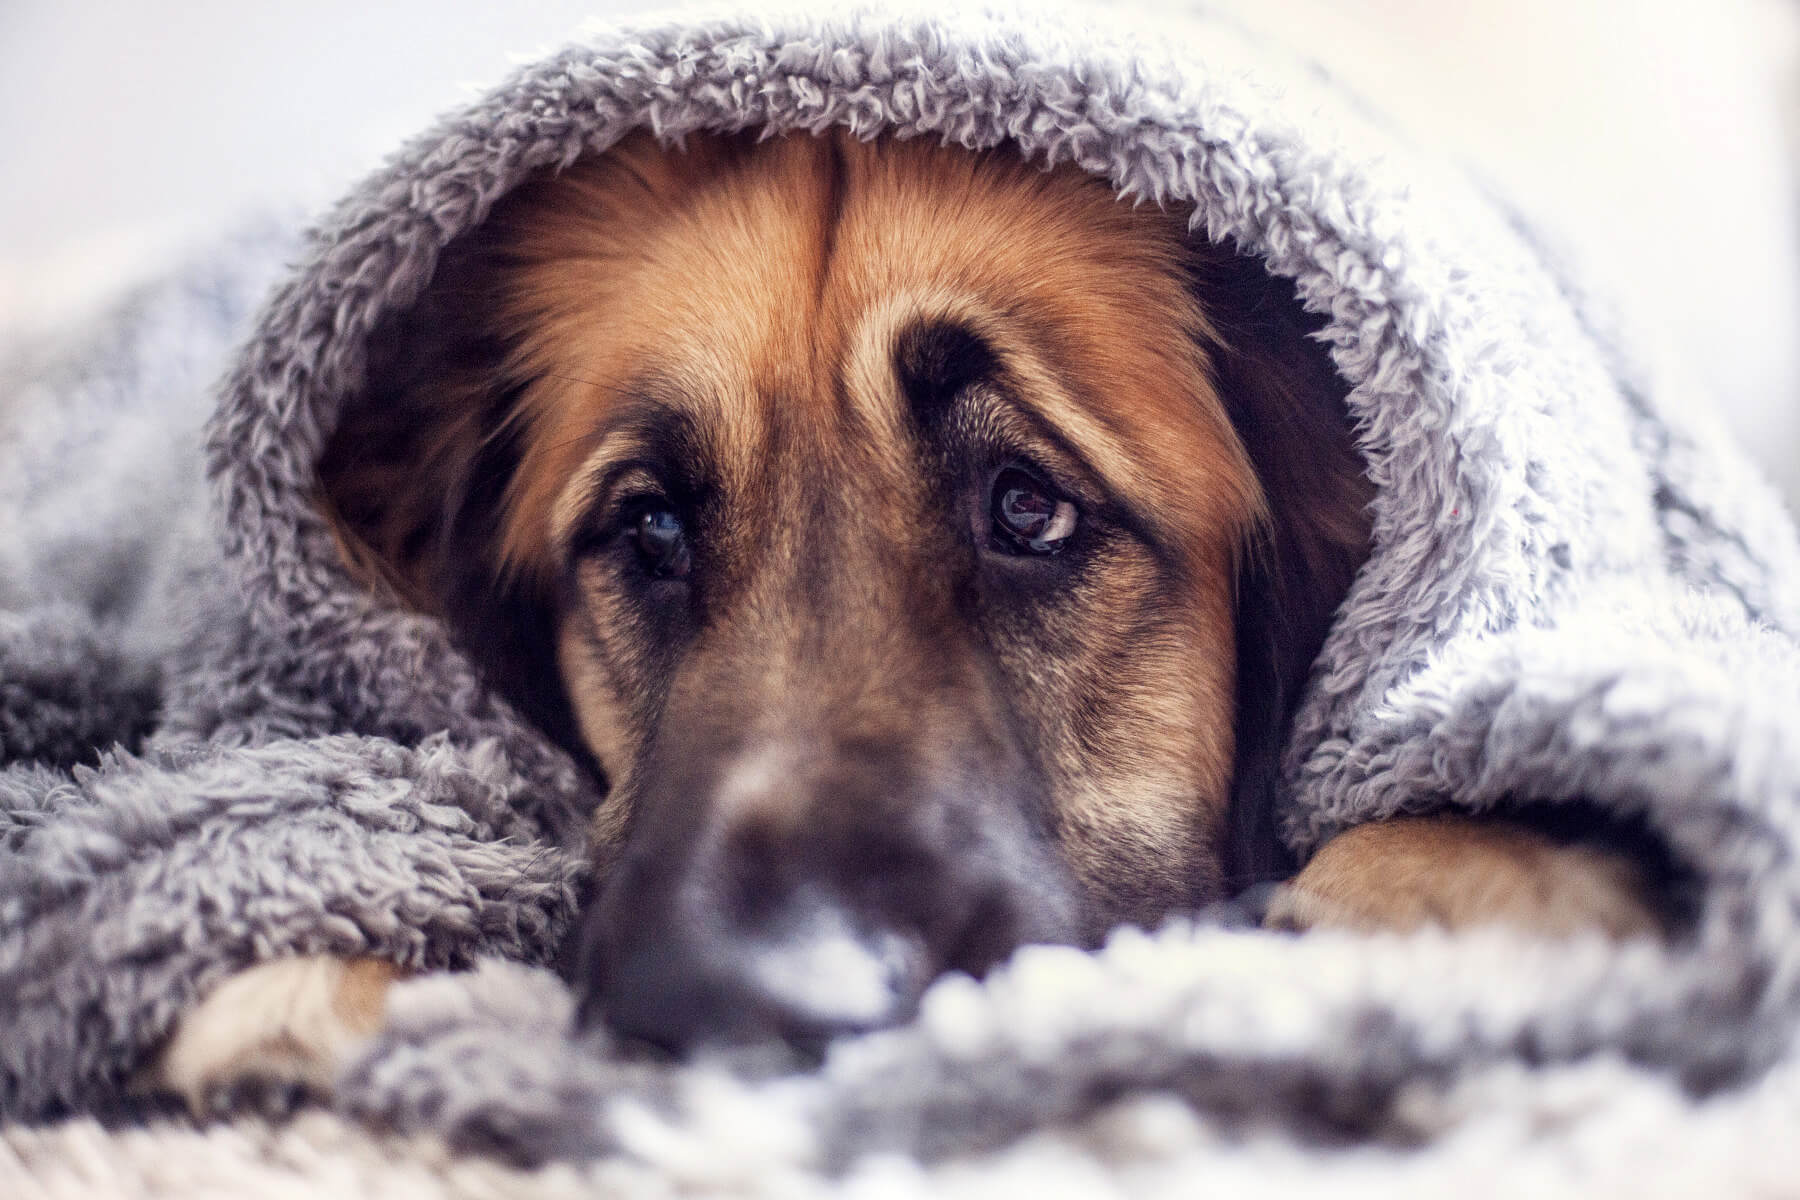 5 Ways to Comfort Your Fireworks-Averse Dog